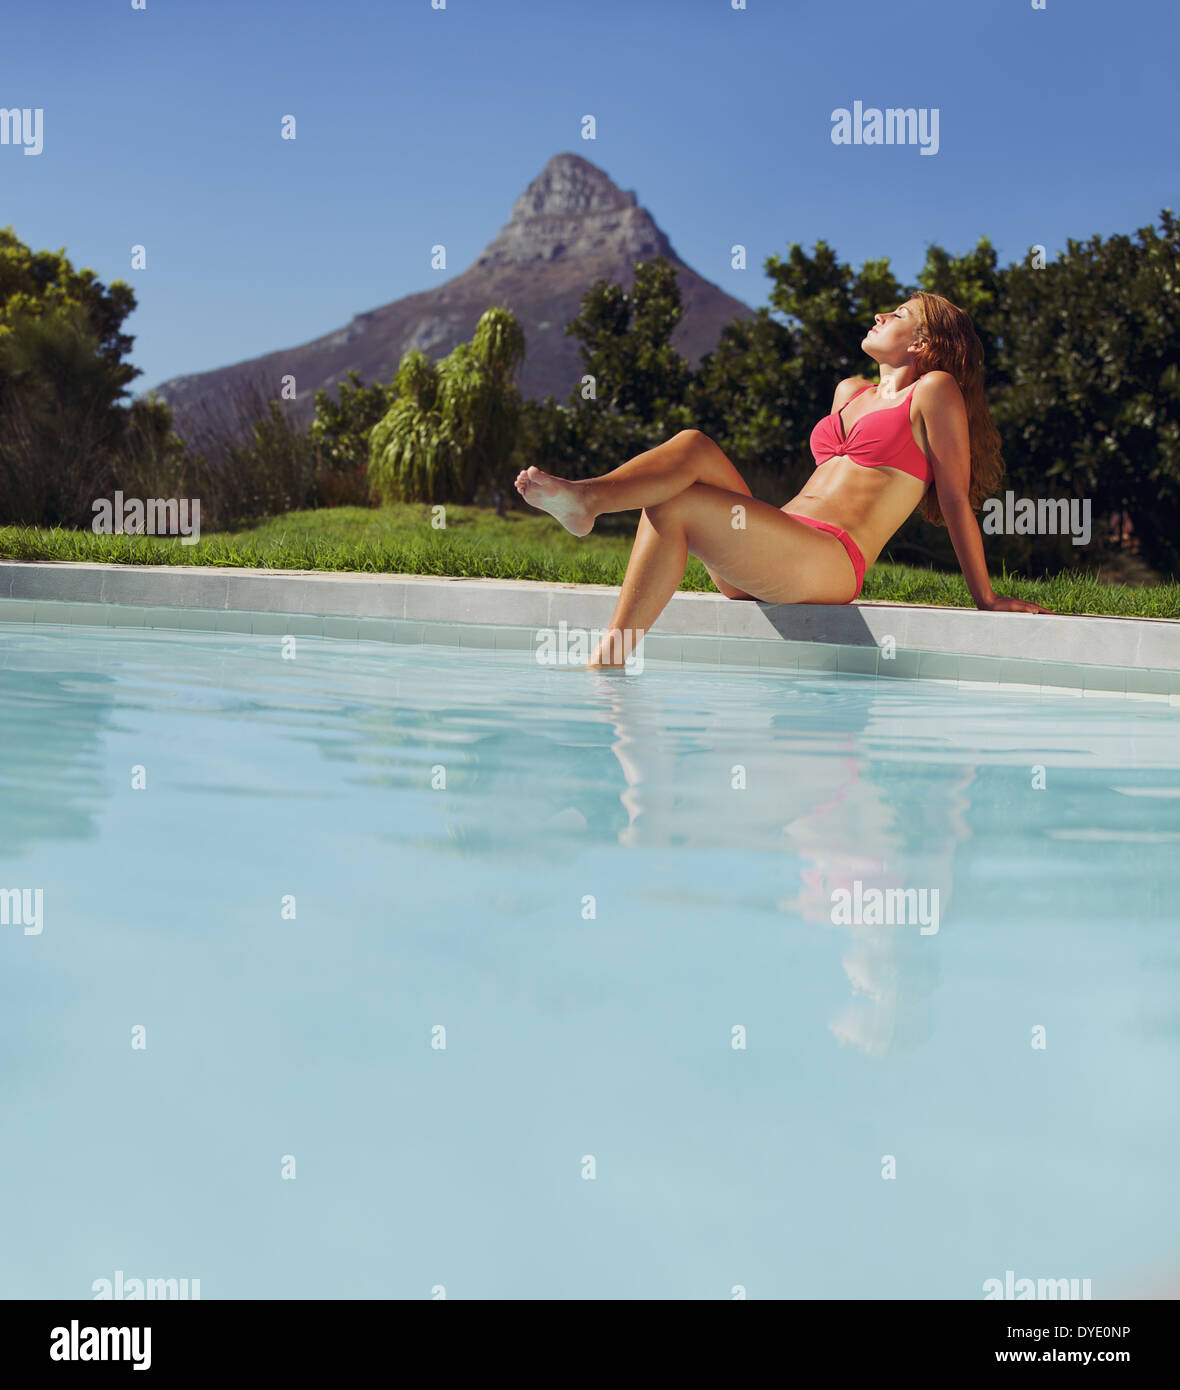 Beautiful young woman sitting by swimming pool and enjoying a sunbath. Caucasian female model in bikini sunbathing by poolside. - Stock Image